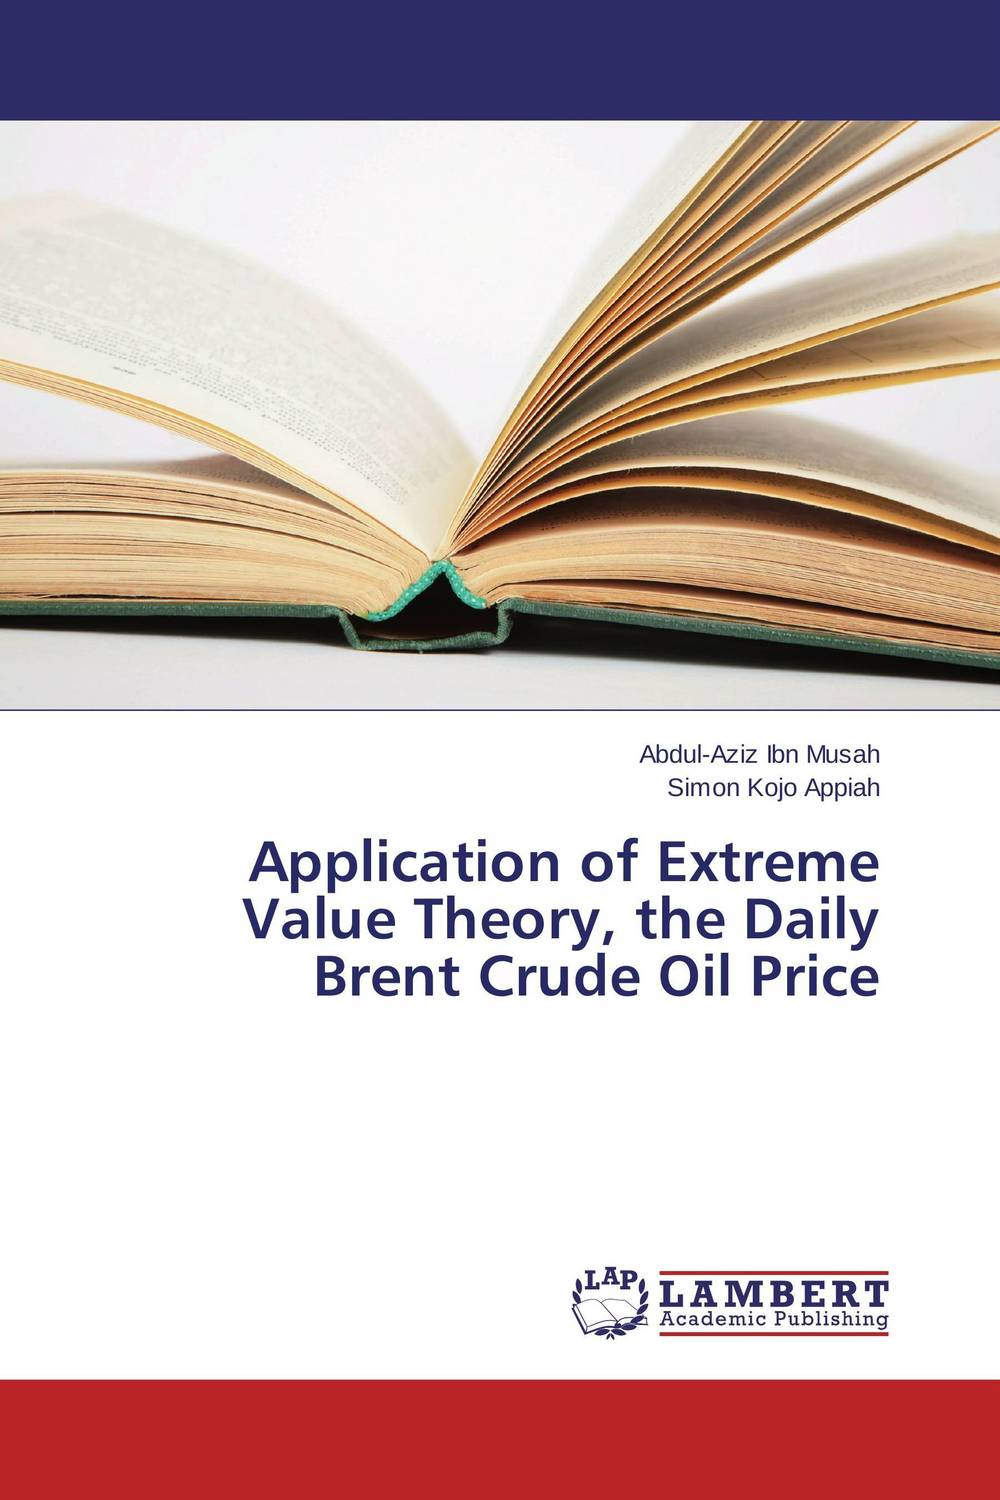 Application of Extreme Value Theory, the Daily Brent Crude Oil Price dearomatization of crude oil